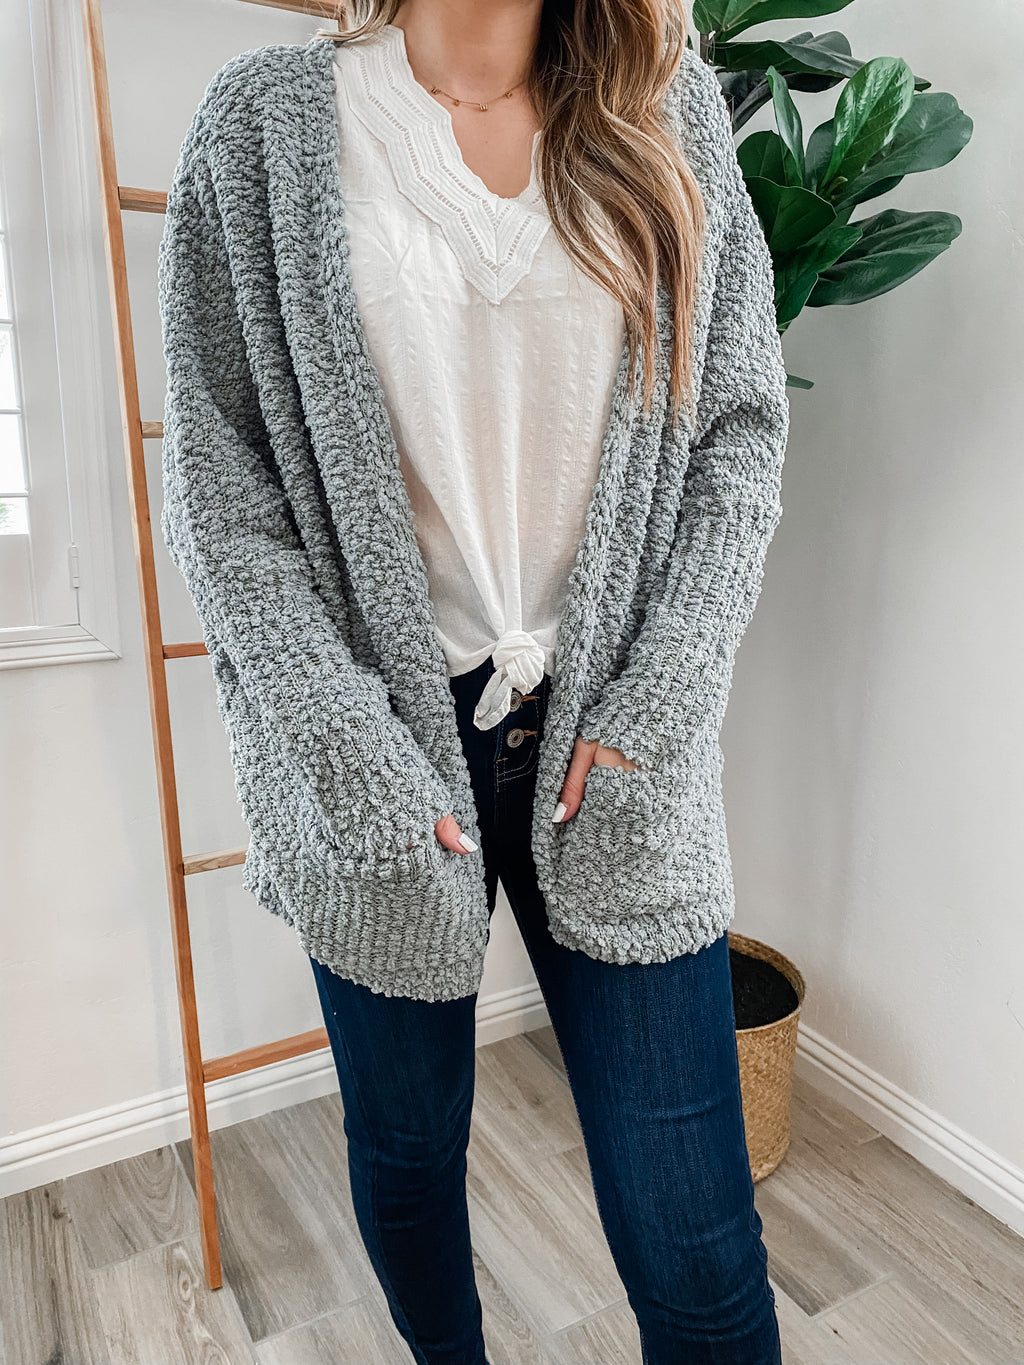 Cool Weather Popcorn Cardigan